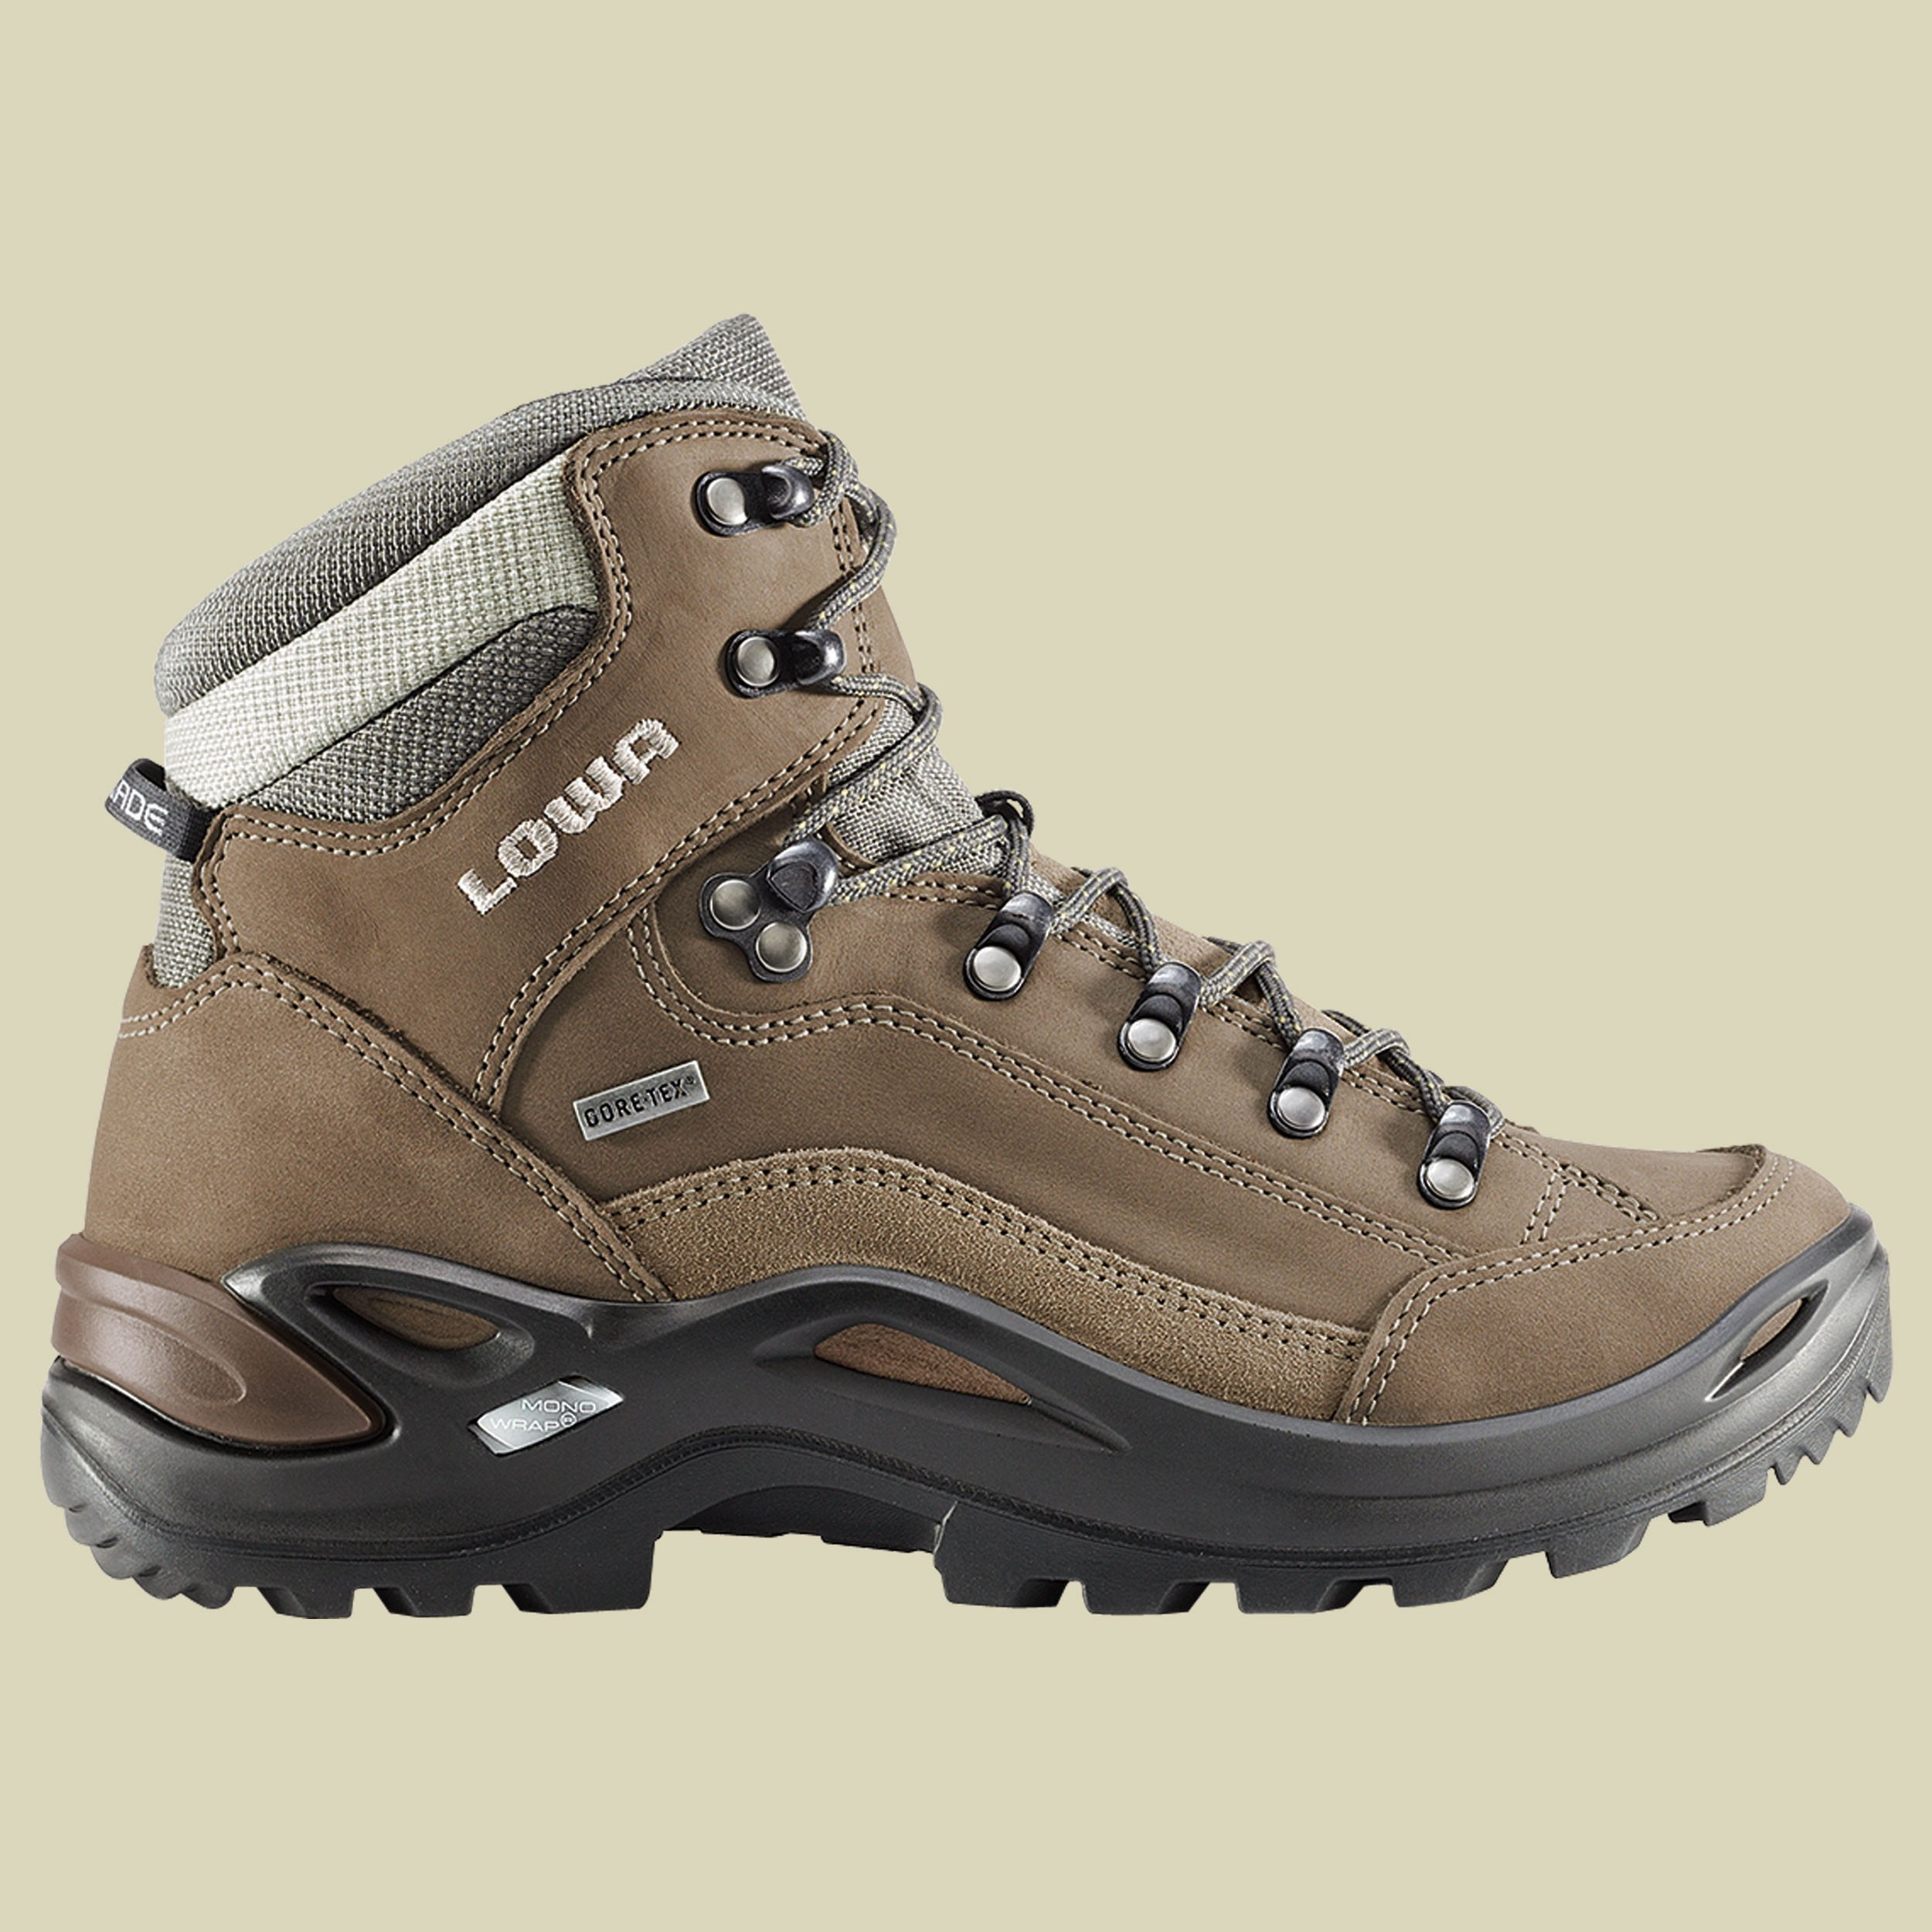 Renegade GTX MID S Women